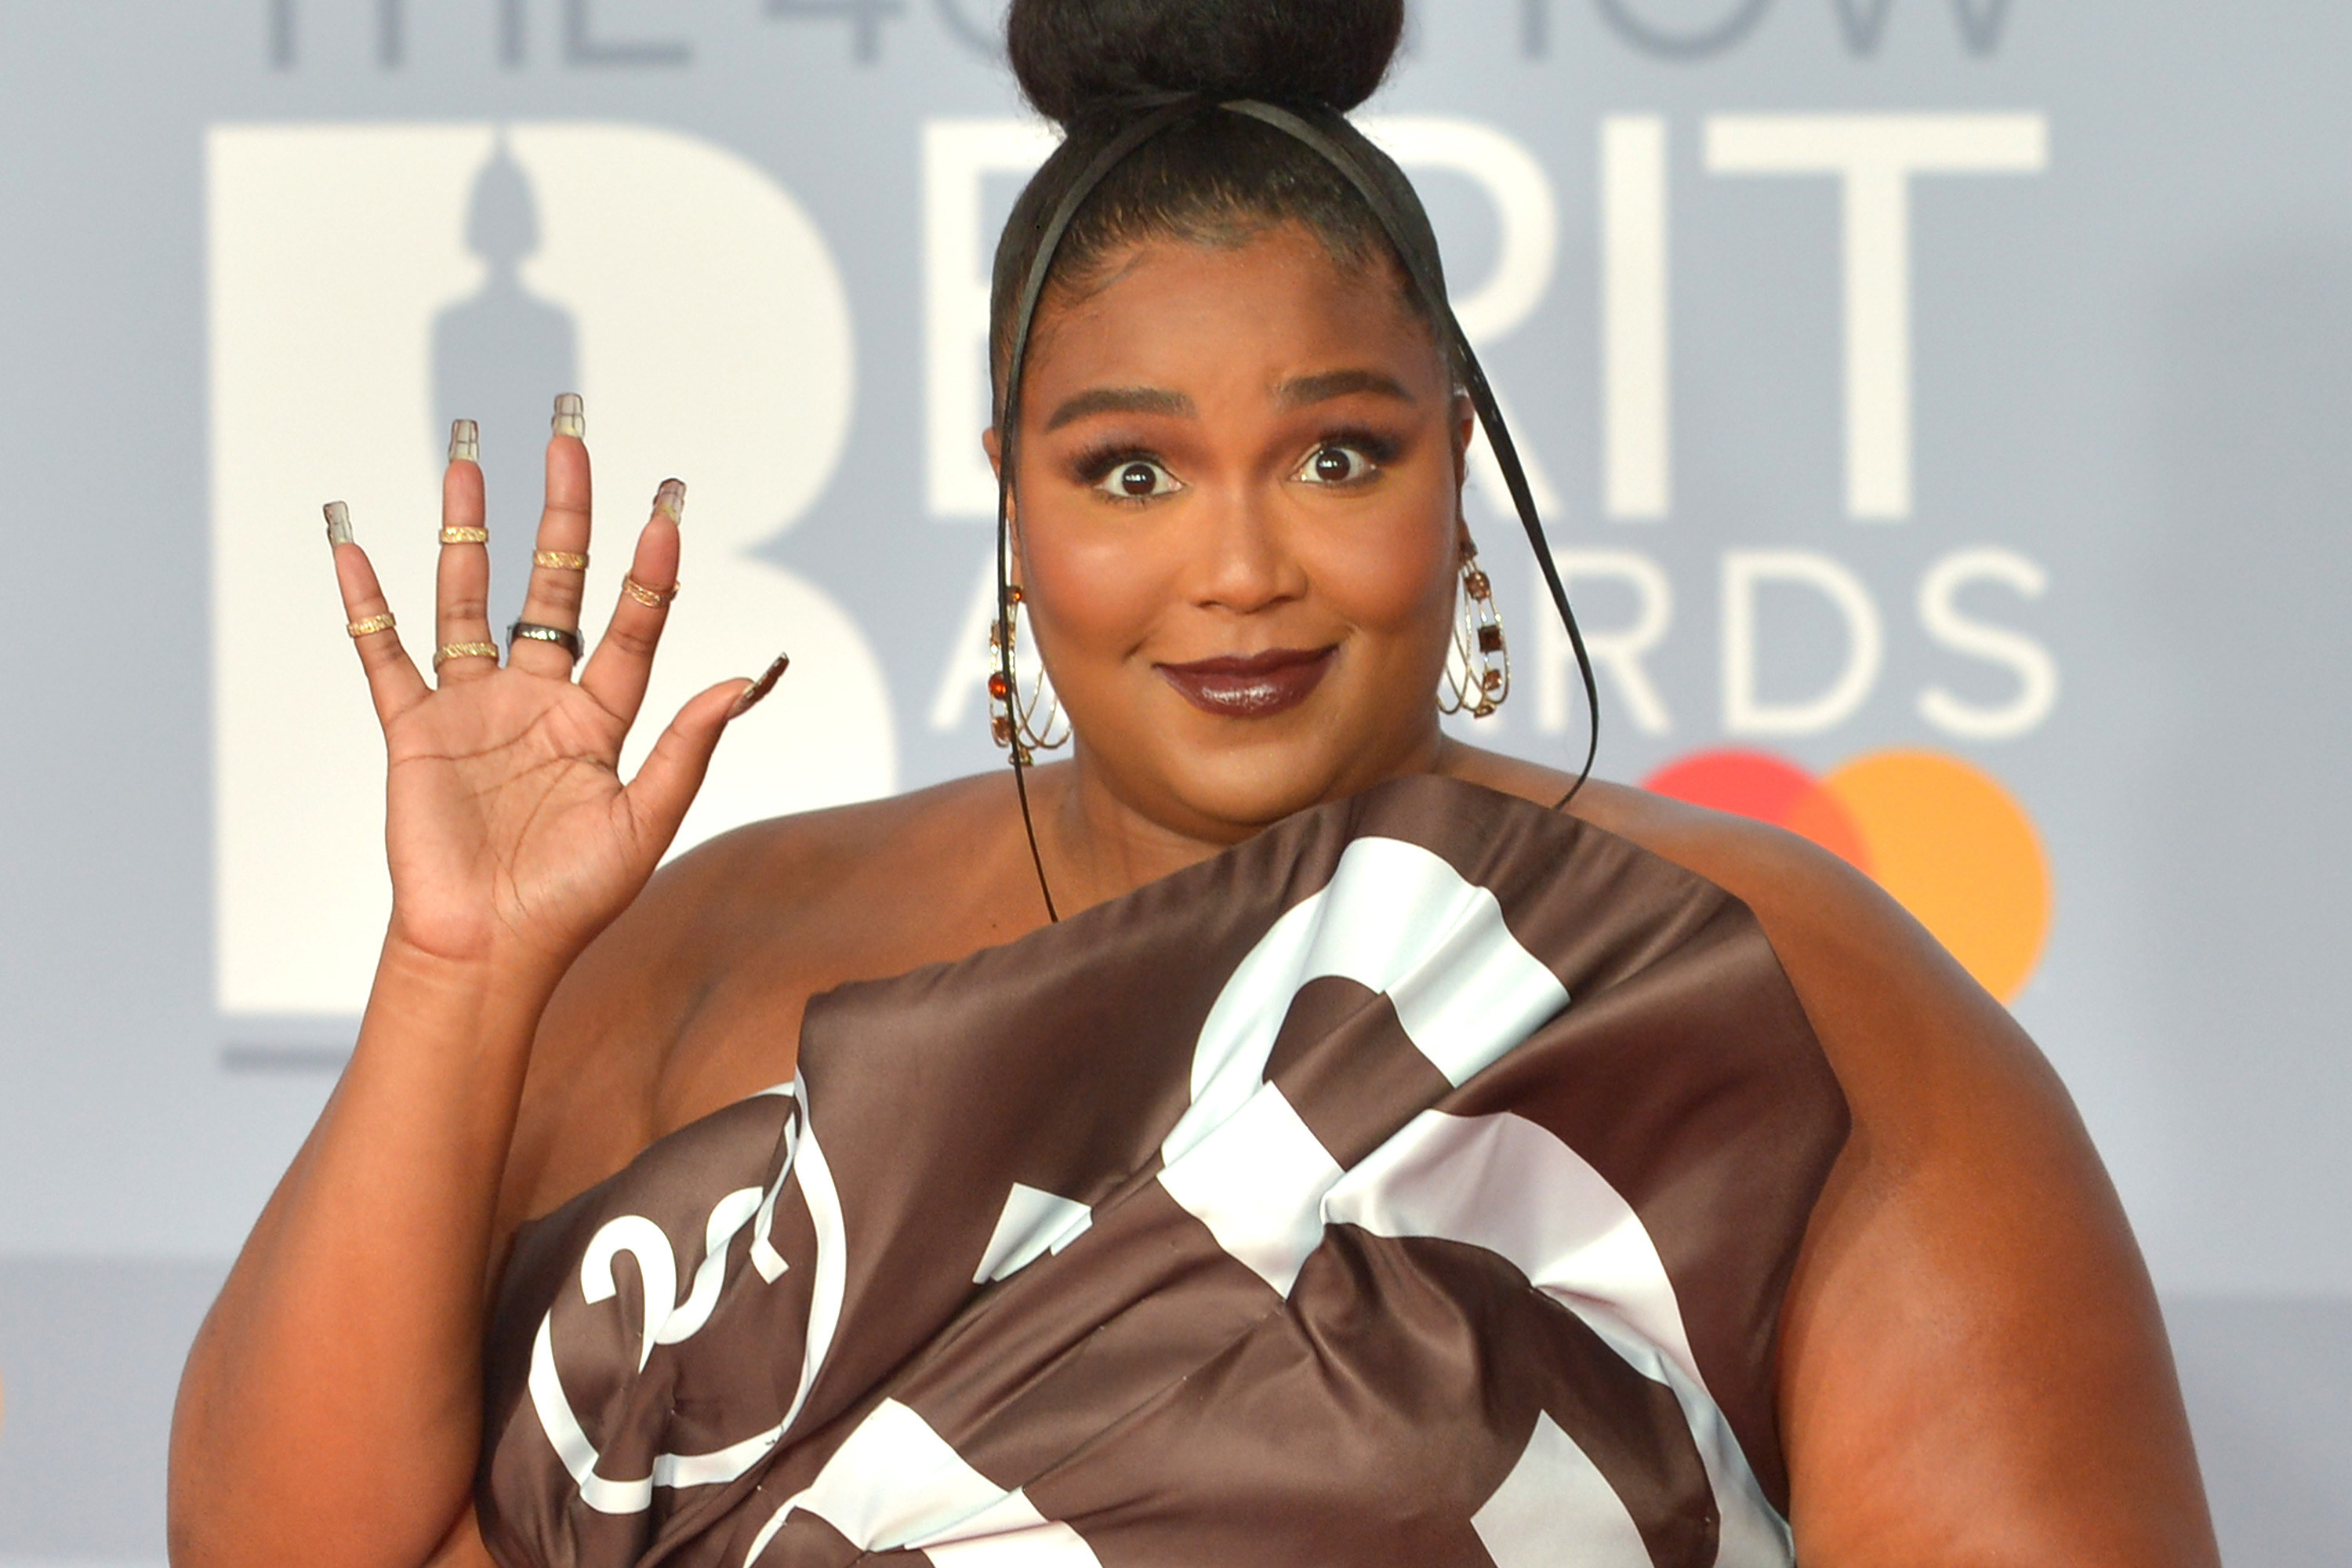 Lizzo attends The BRIT Awards 2020 at The O2 Arena on February 18, 2020 in London, England